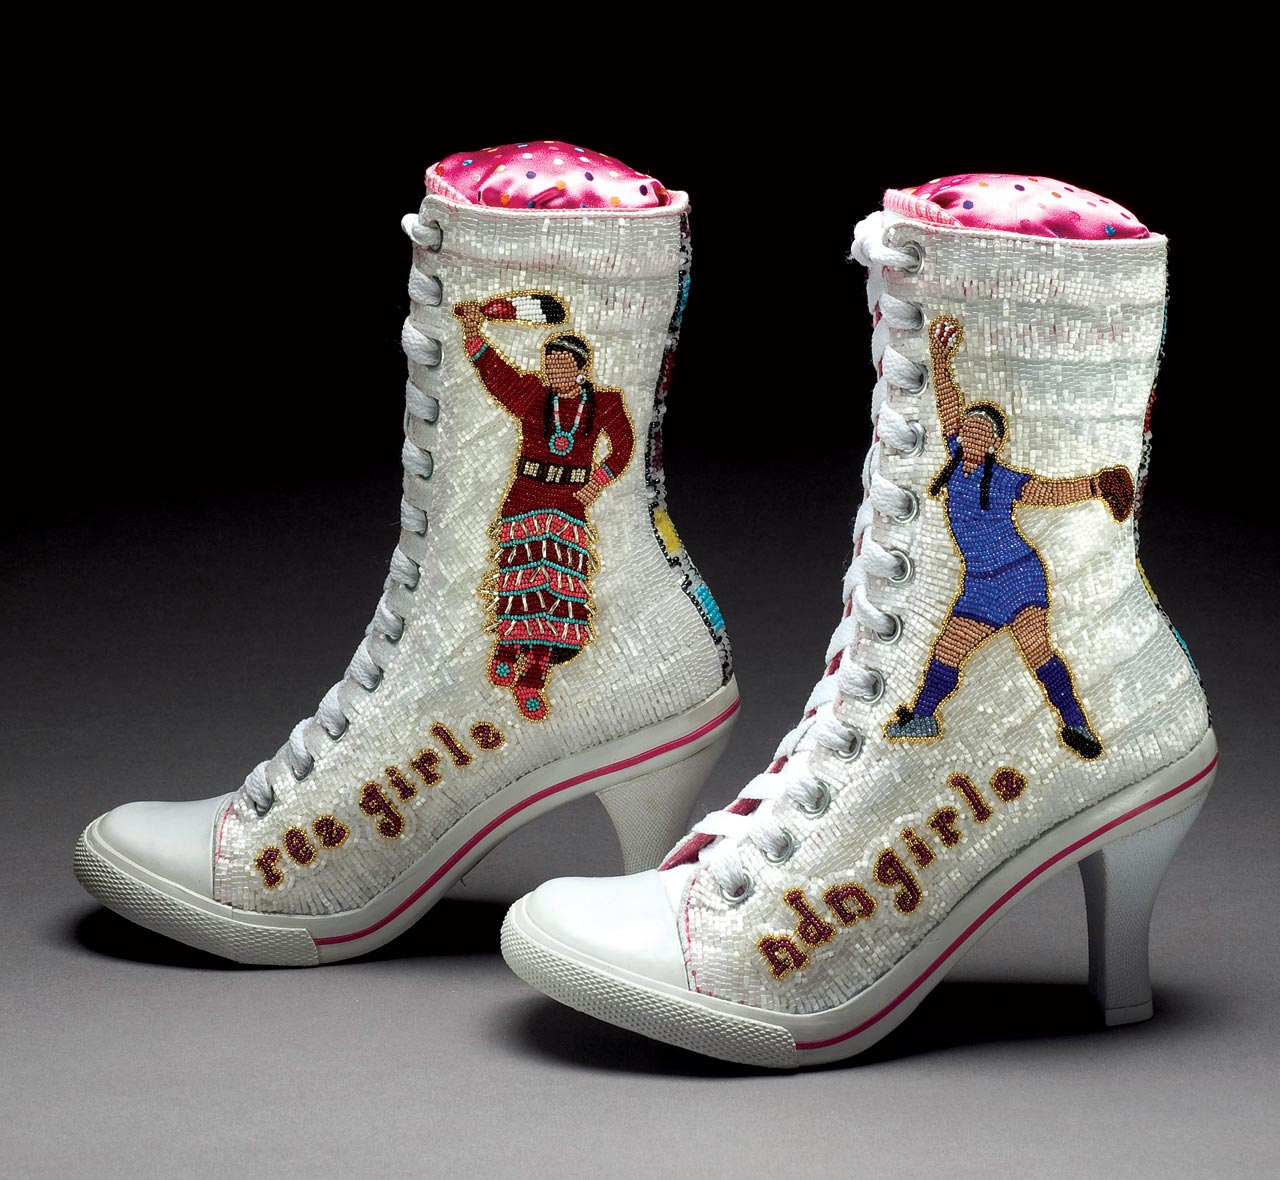 MUSEUM OF INTERNATIONAL FOLK ART:  Shown are ndn girlz / rez girlz sneakers by Teri Greeves.